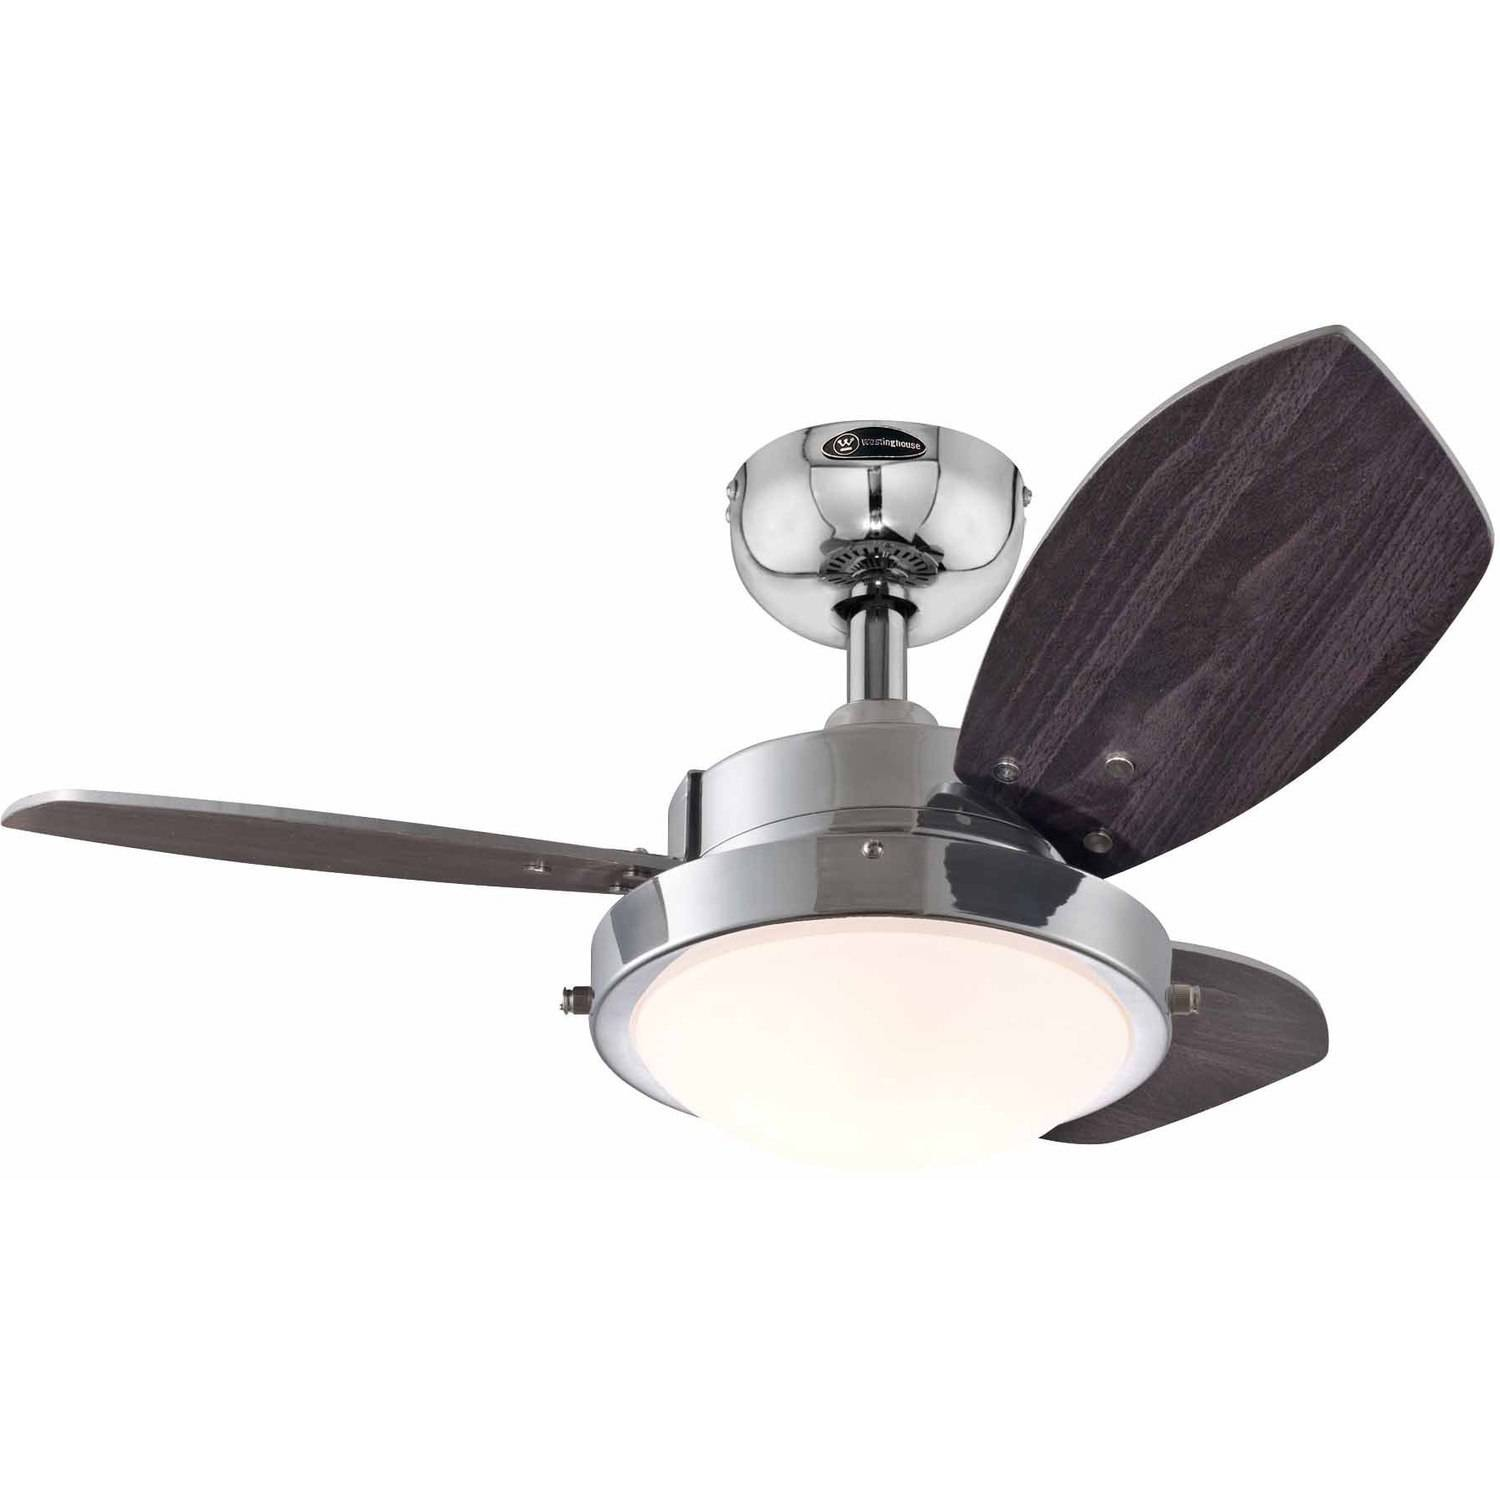 minka rainman blade fast led fan lighting wayfair outdoor reviews ceiling pdx aire